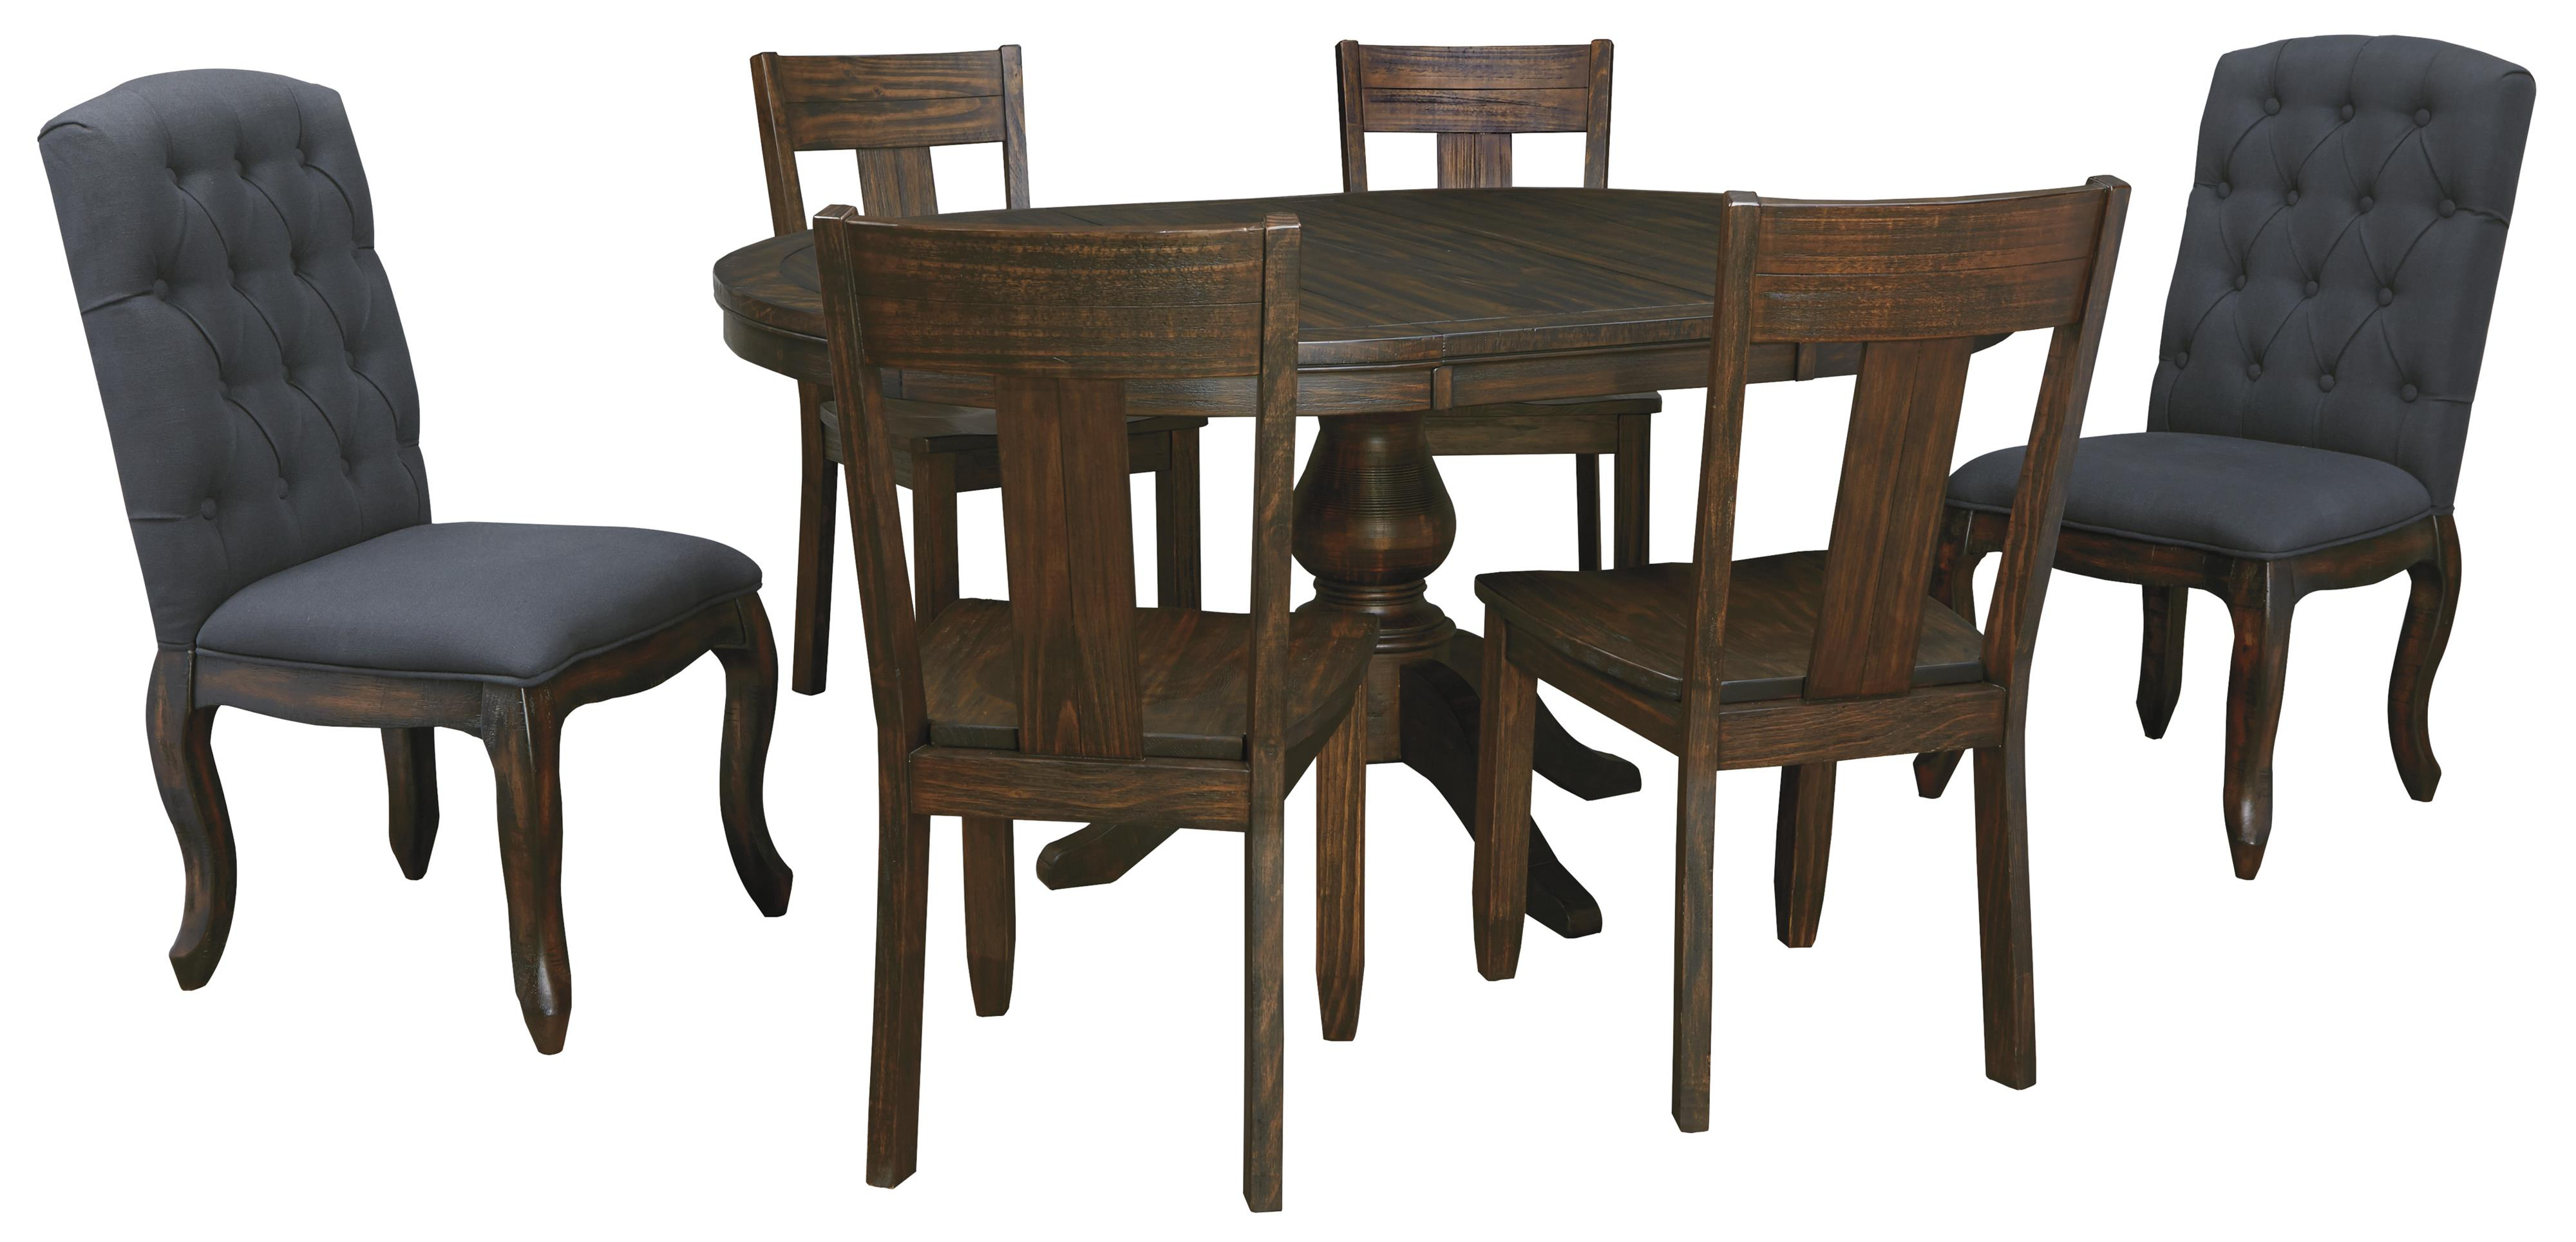 Dining Chairs Set 7 Piece Oval Dining Table Set With Upholstered Chairs